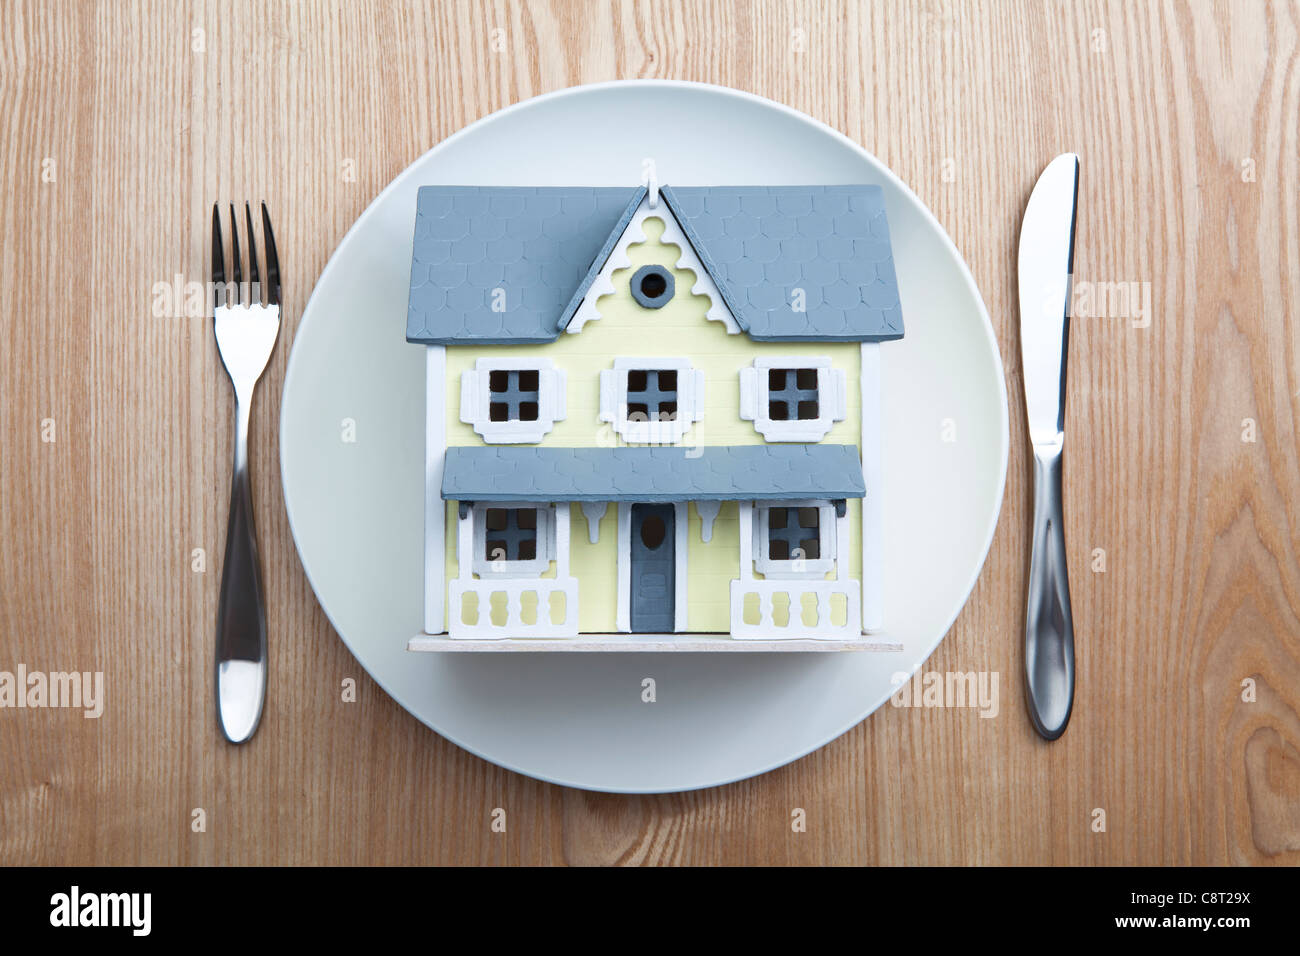 Top view of architectural model placed in plate with fork and knife on table - Stock Image